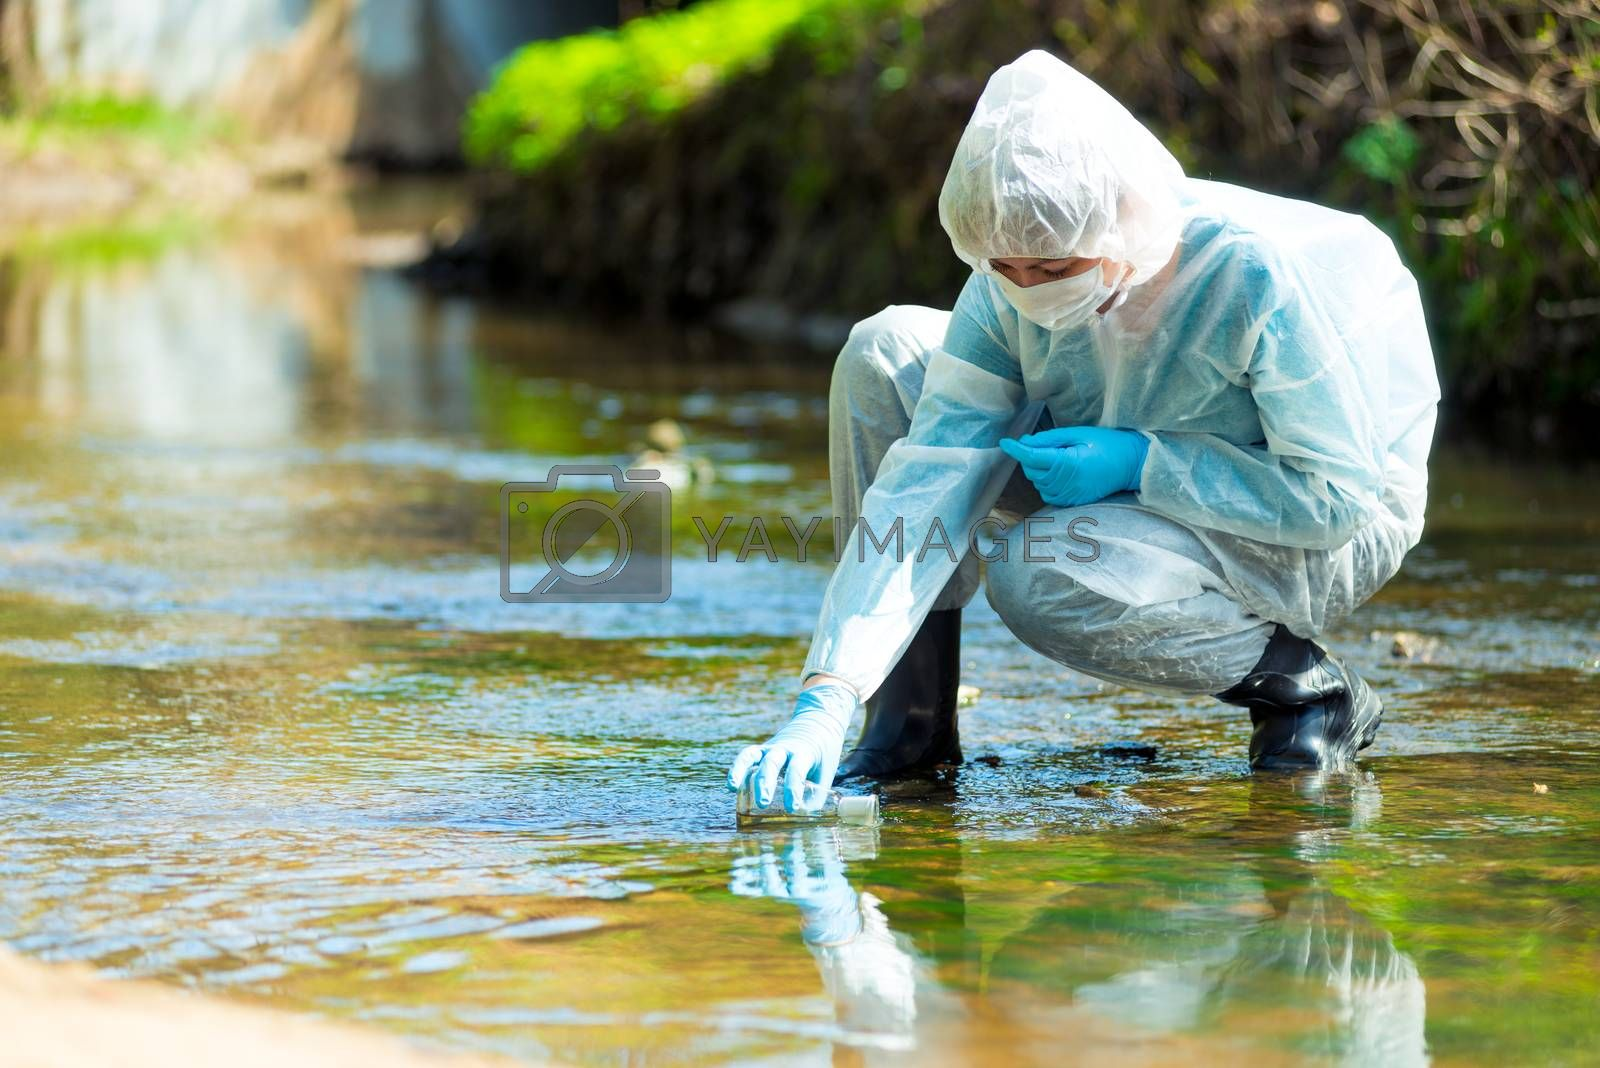 scientist researcher in protective suit takes water for analysis from polluted river